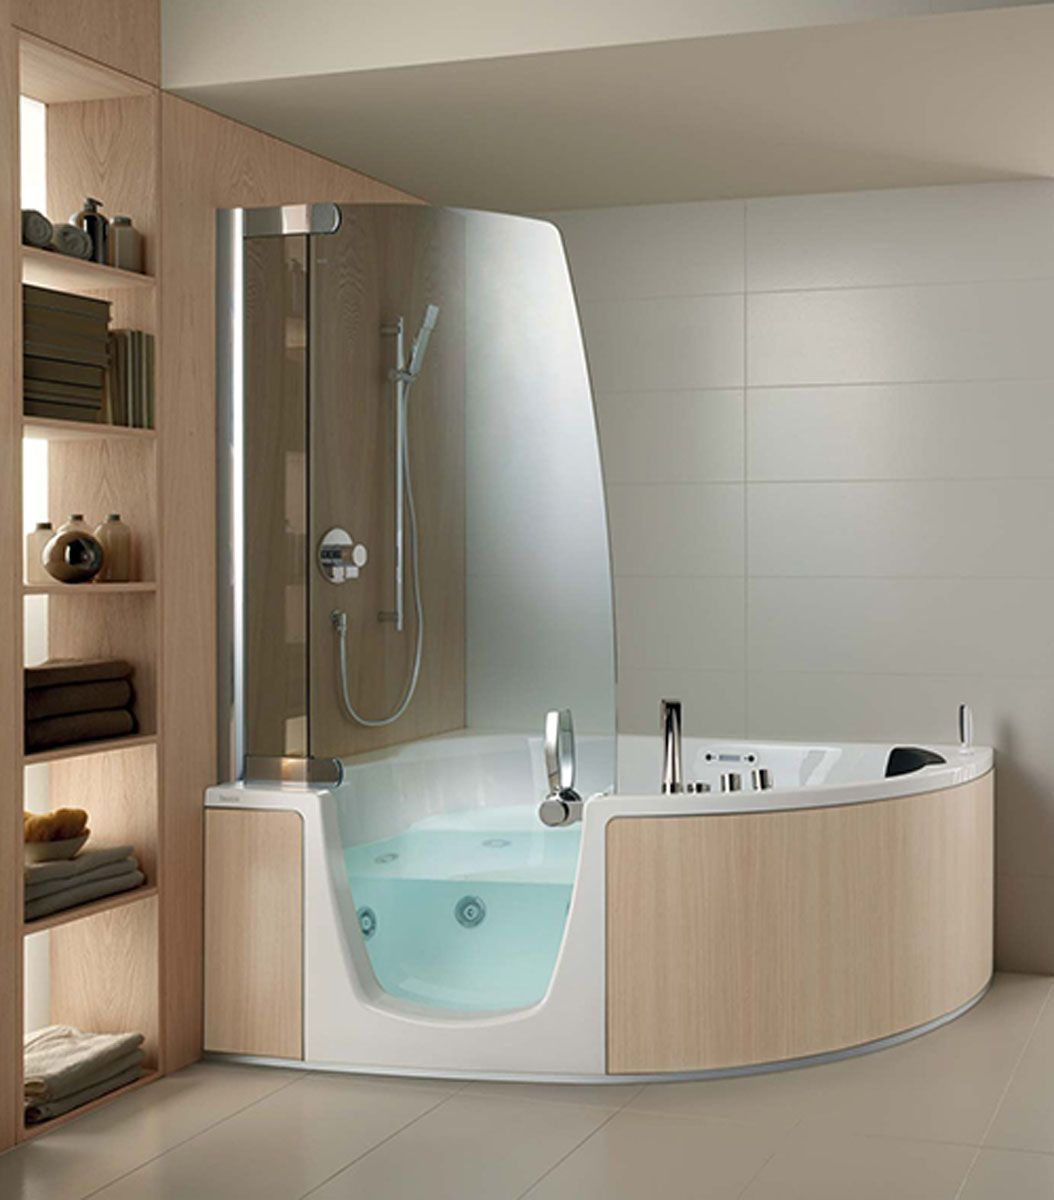 F Small White Fiber Walk In Tub With Glass Door Divider And